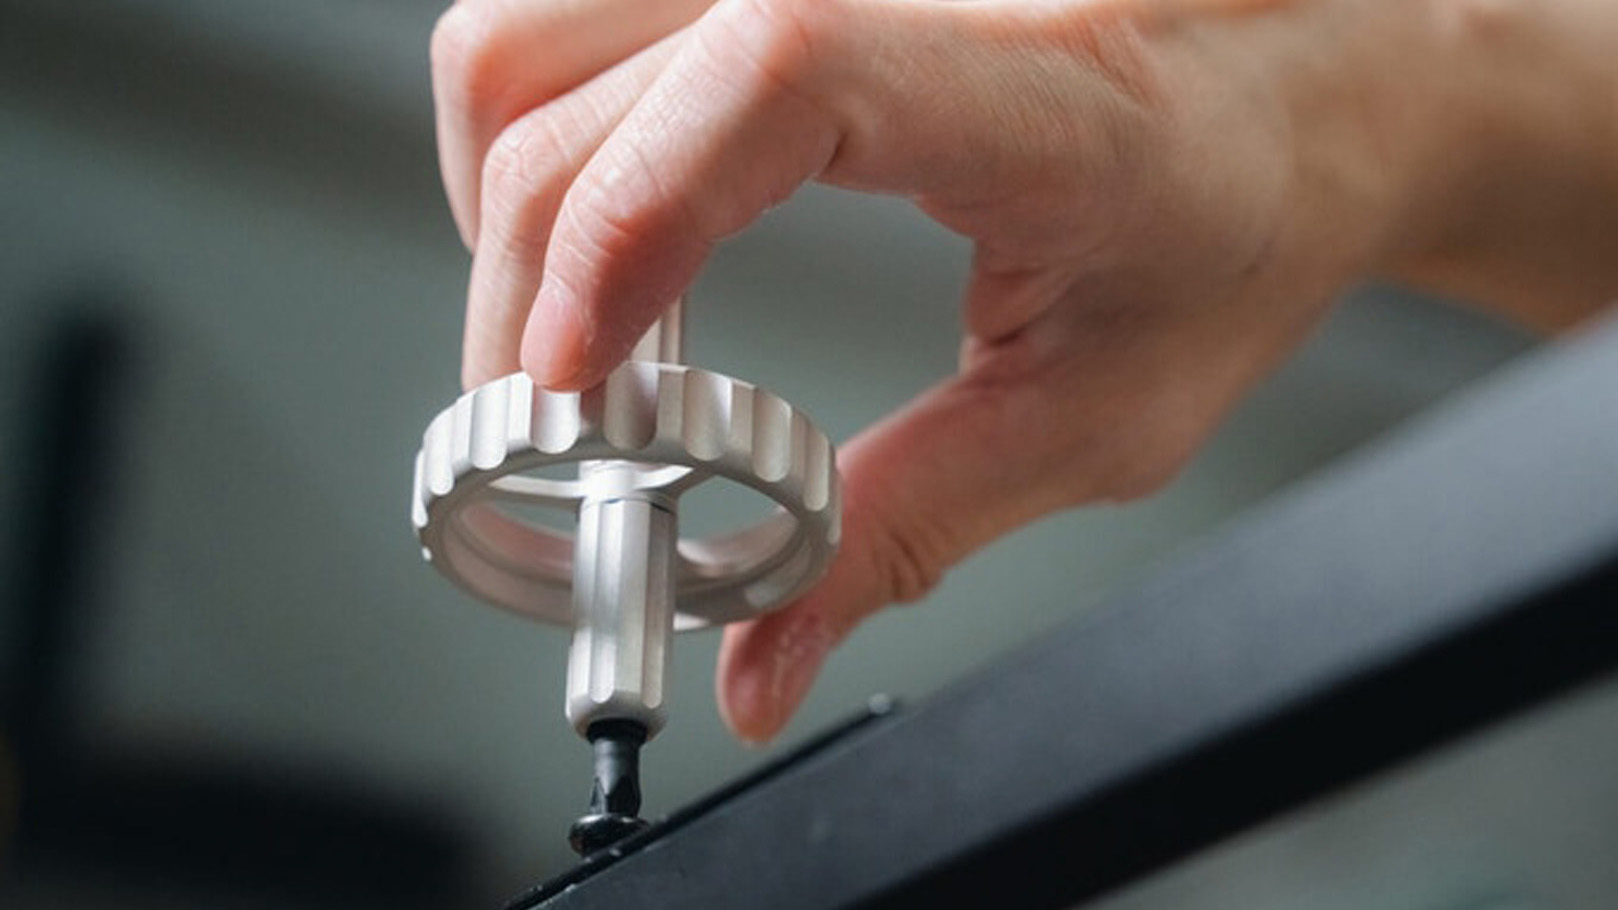 This reinvented screwdriver is the tool to end all tools